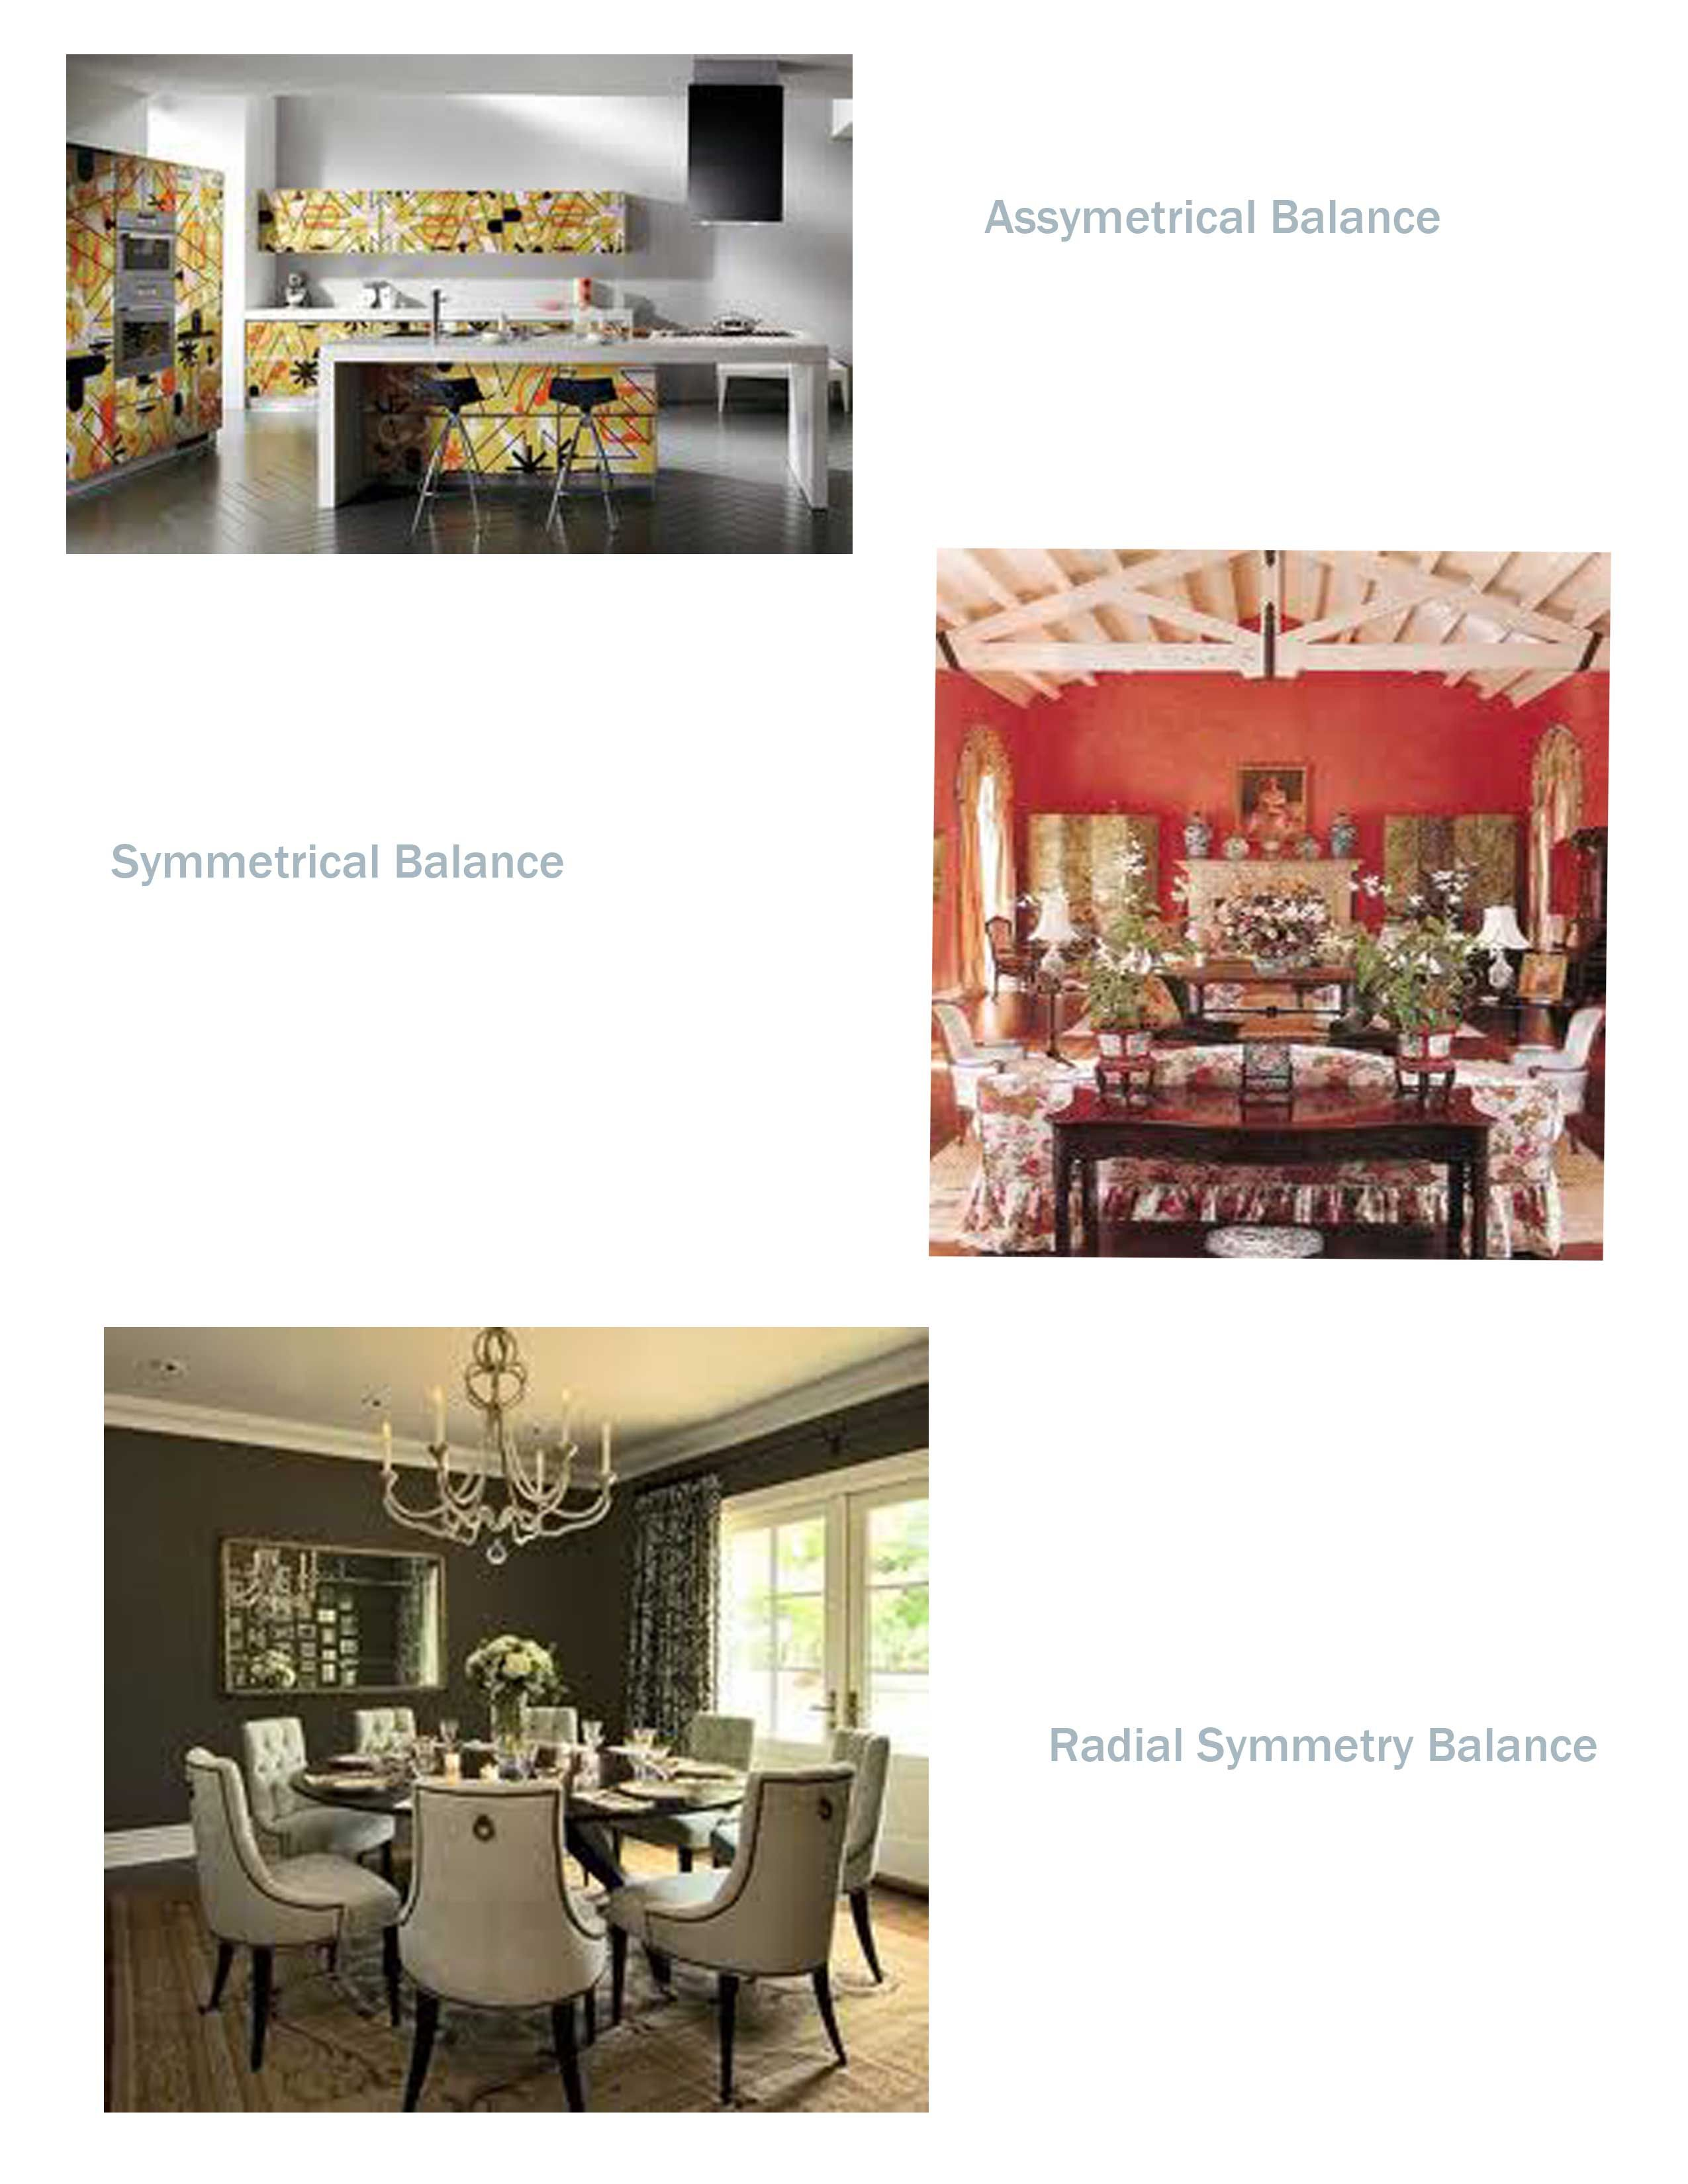 #fs4233 CA8-Symmetrical, Asymmetrical, & Radial Balance: Symmetrical balance is predictable and resurring design. Asymmetrical balance is often unsettling and erratic, but when done properly, it can be energetic and fun! Radial balance tends to promote togetherness and communication.